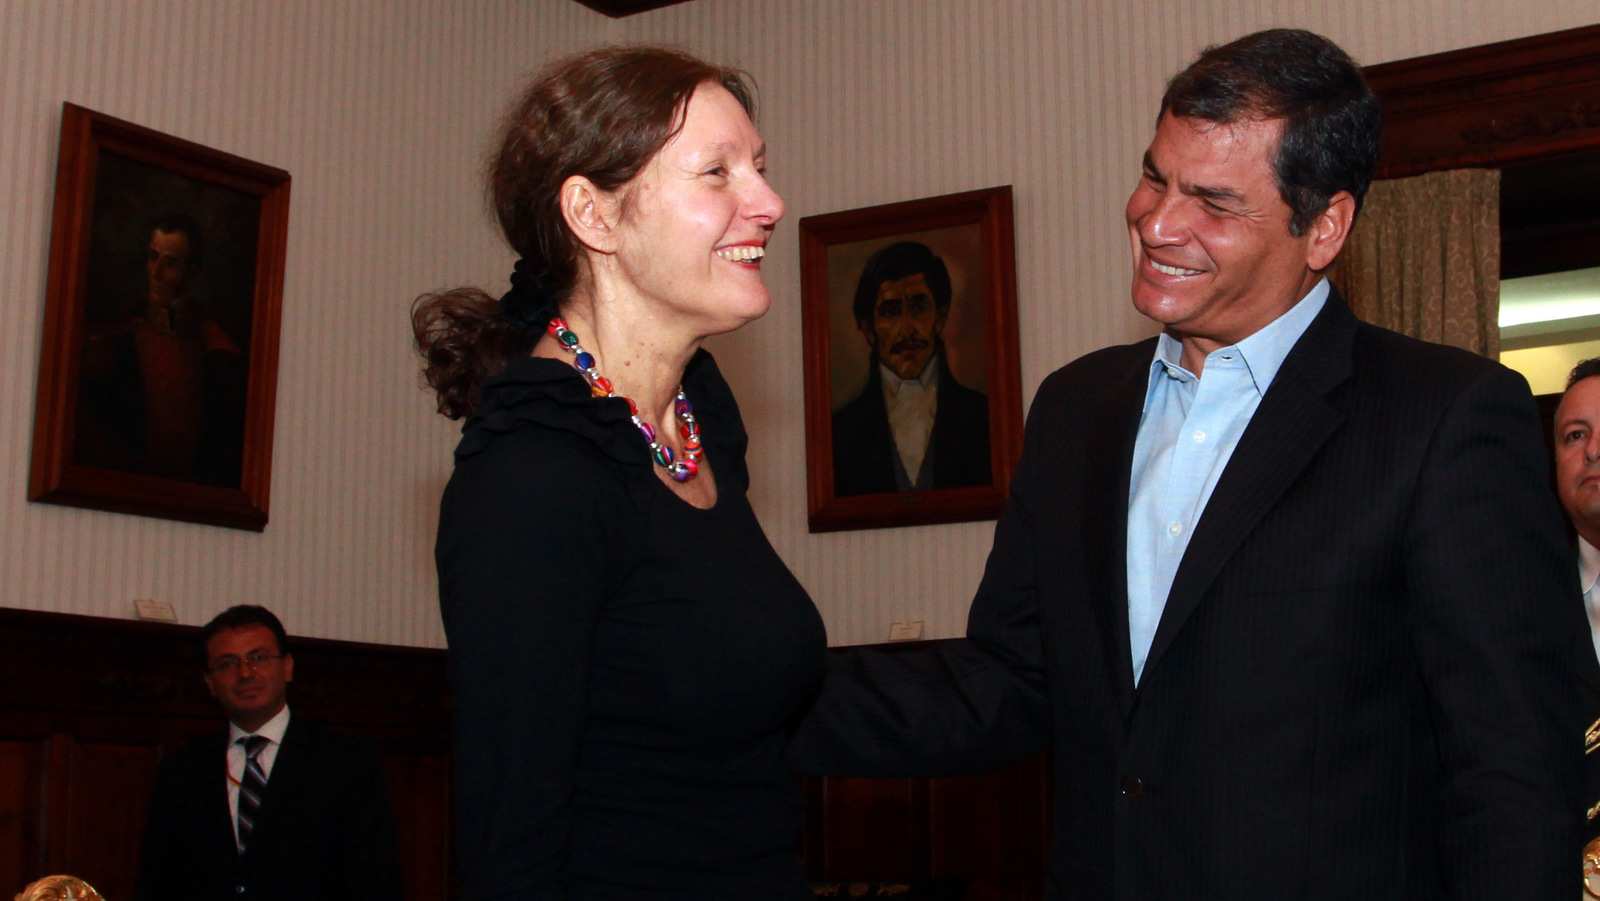 Rafael Correa meets with Christine Assange, the mother of WikiLeaks founder Julian Assange in Quito, Ecuador, Aug. 1, 2012. (AP/Martin Jaramillo)